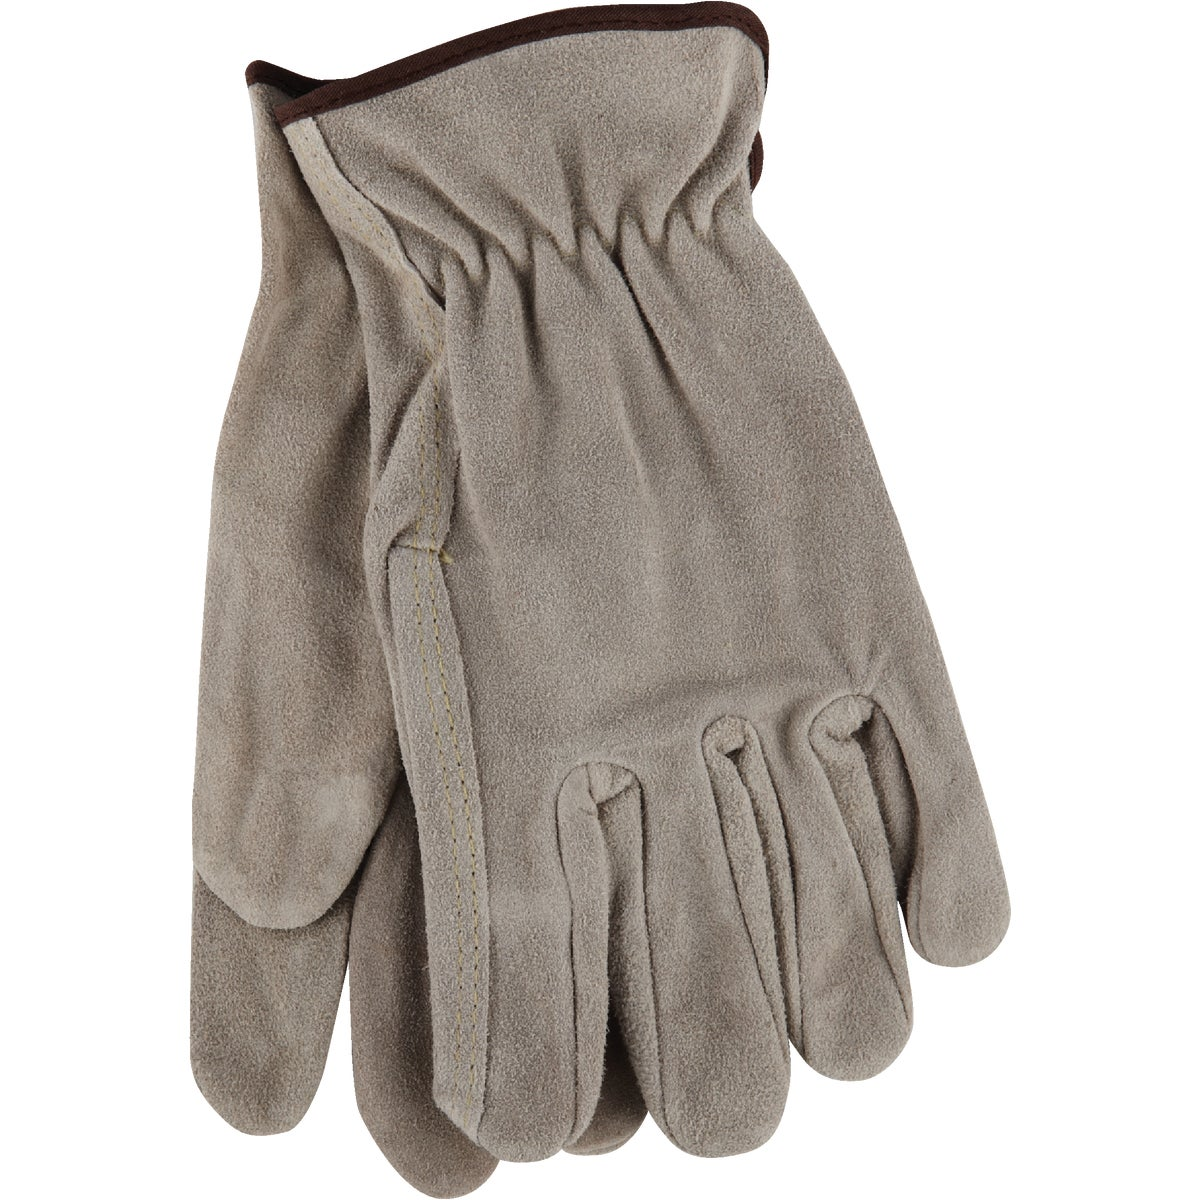 XL SUEDE LEATHER GLOVE - 728396 by Do it Best